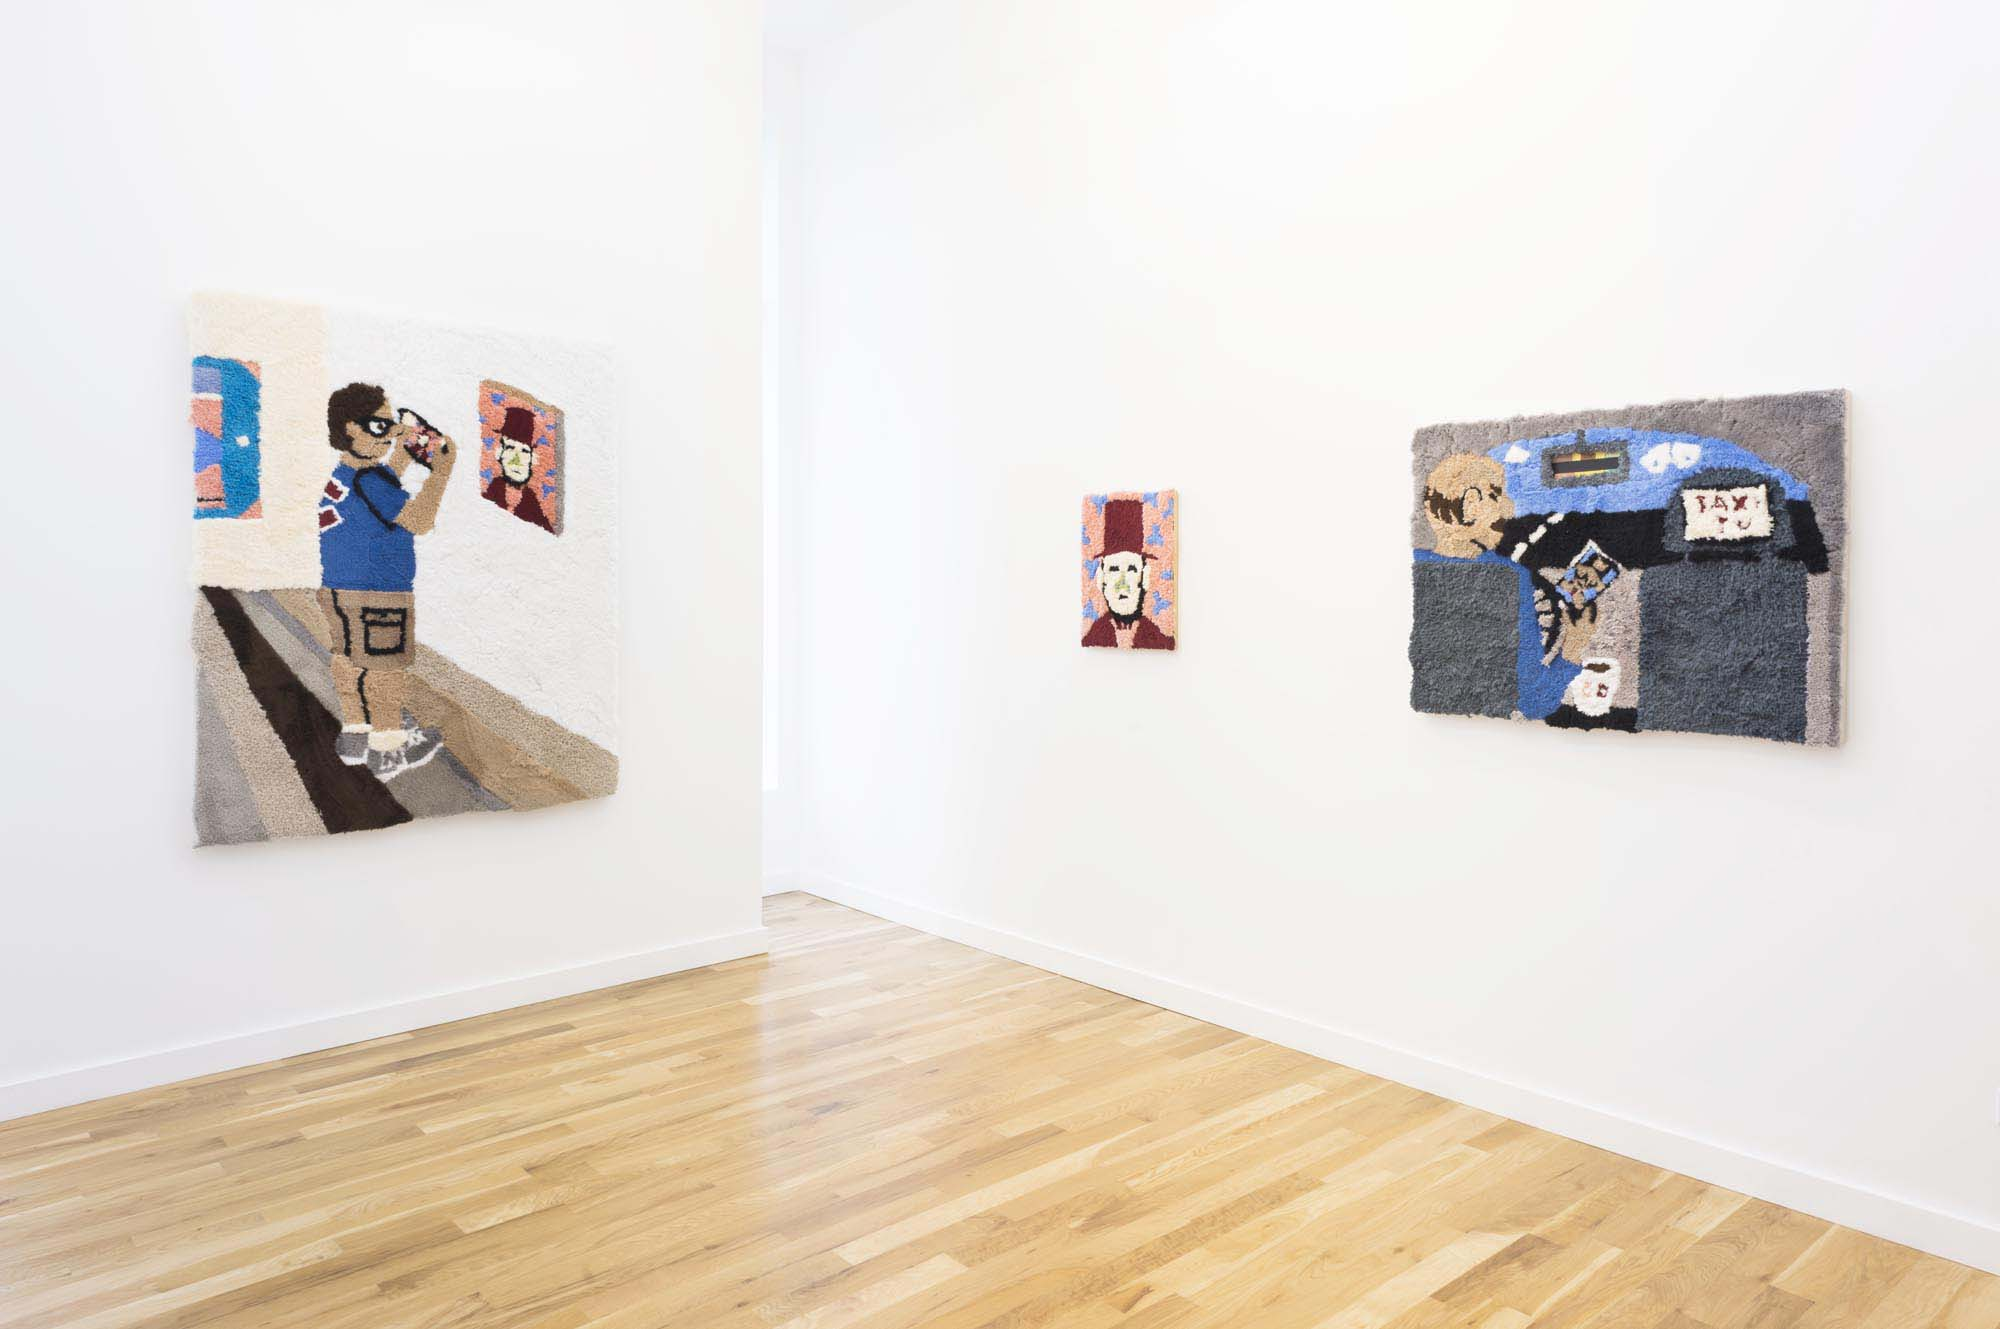 Jessica Campbell, who dis (Installation view), 2018, Western Exhibitions, Chicago. Photograph by James Prinz